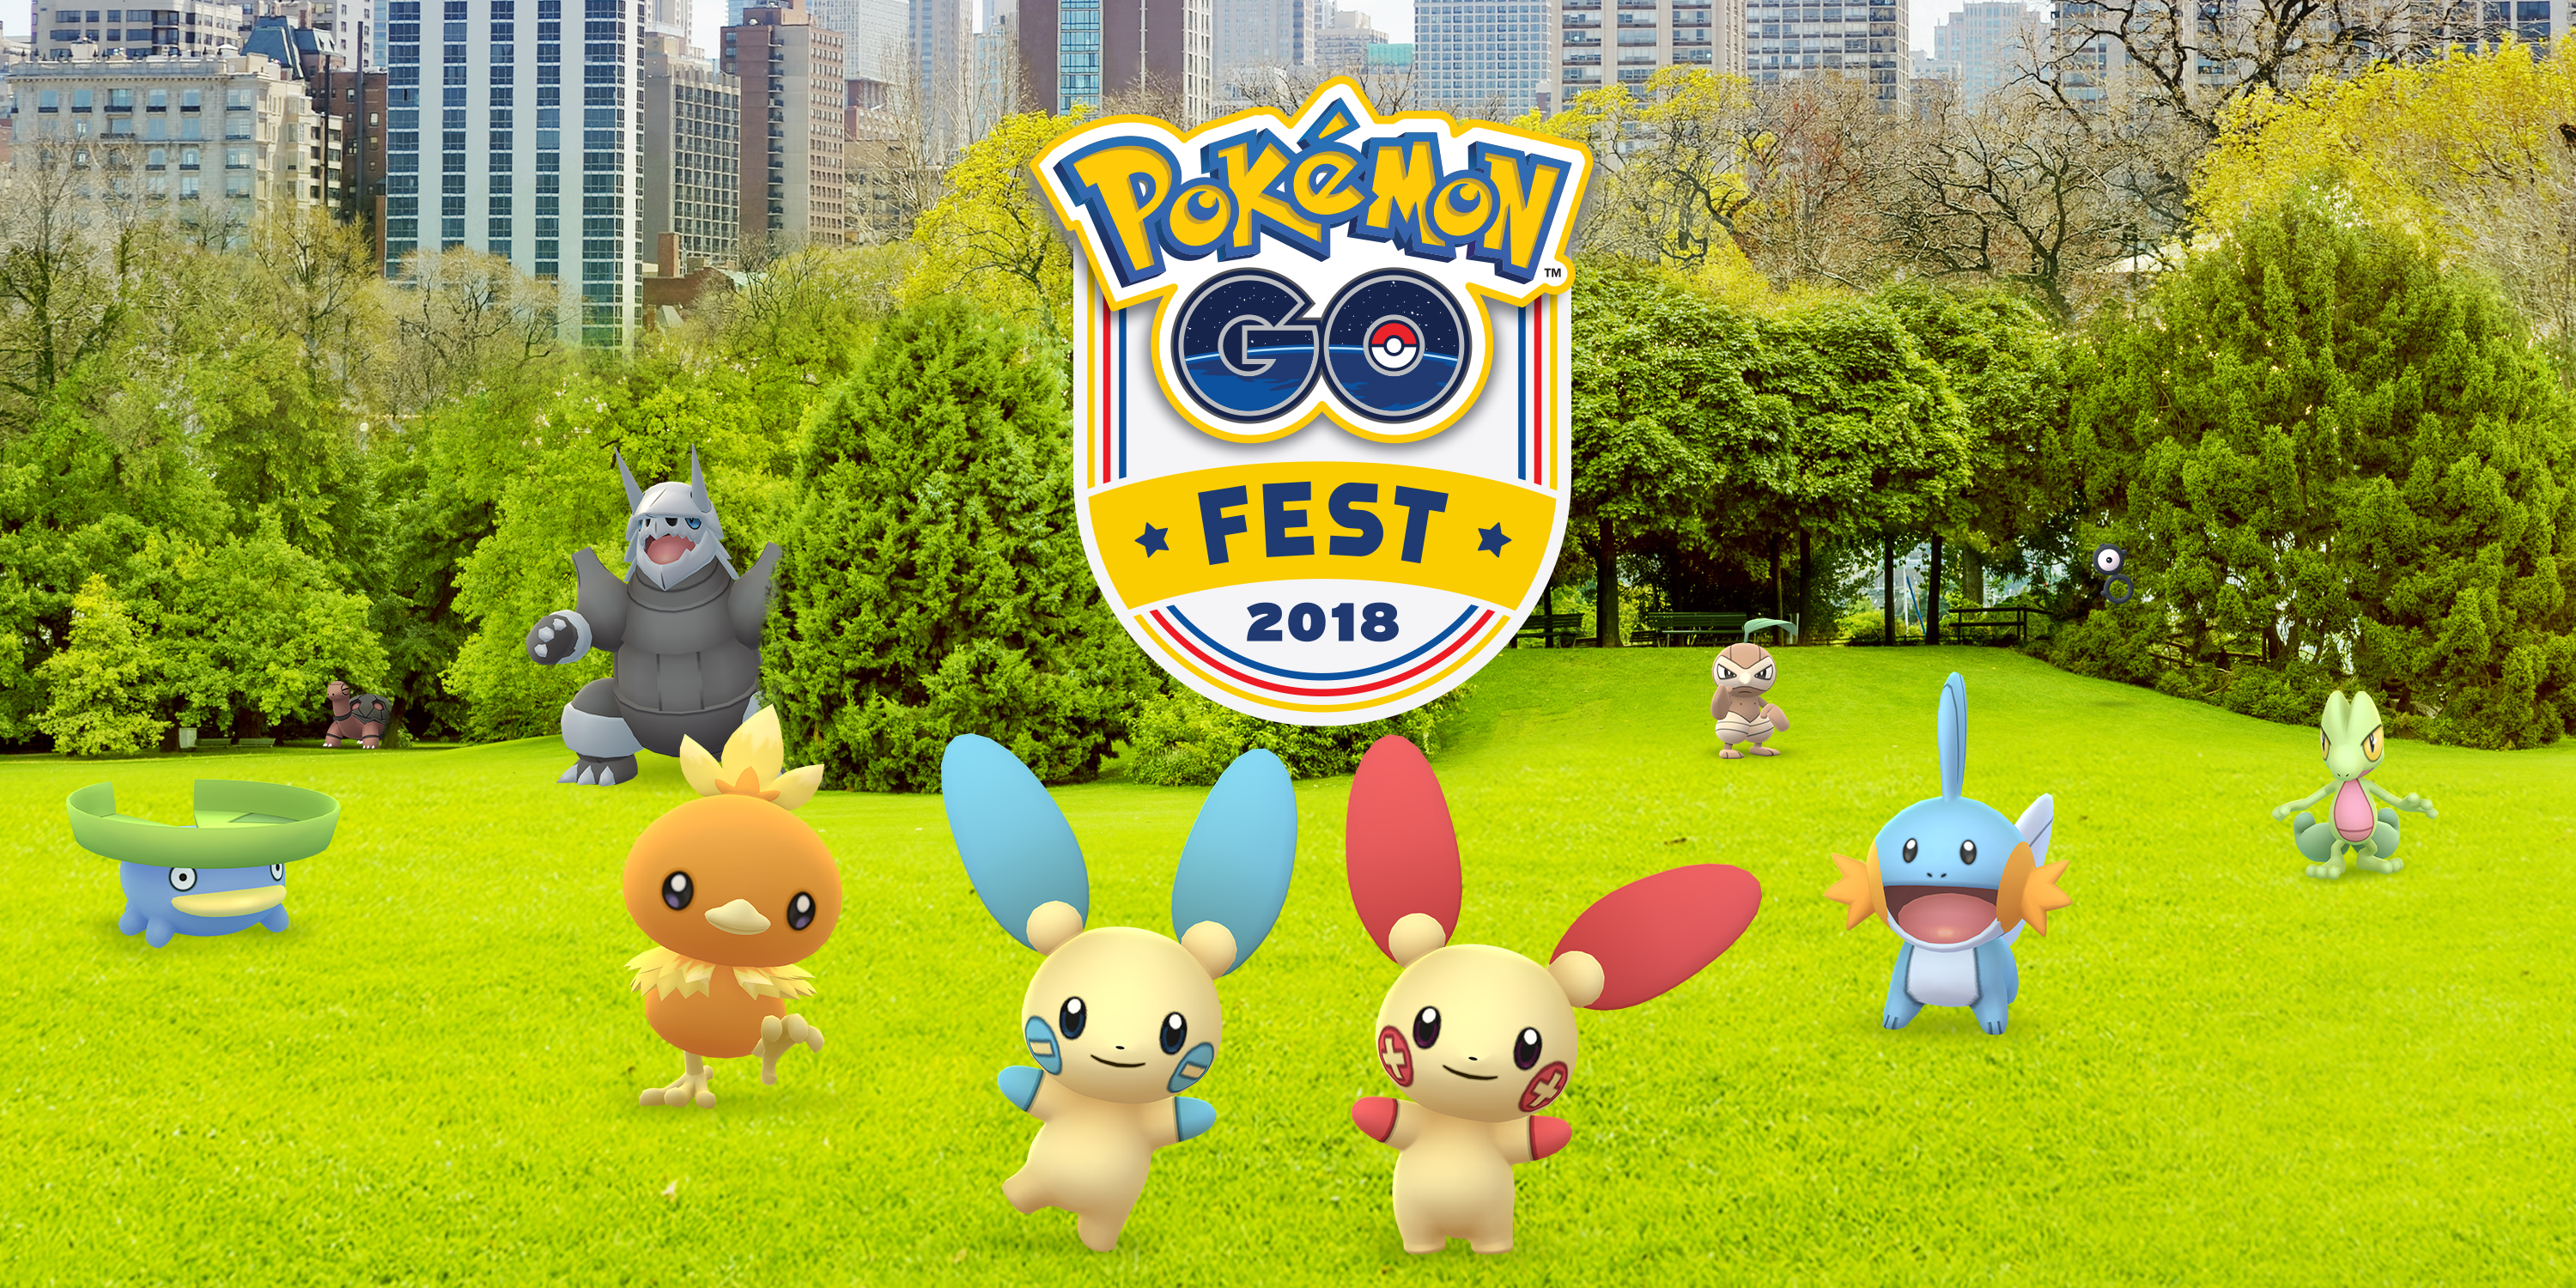 Photo of Pokemon Go Fest 2018 Roundup, Get Ready for the Special Ultra Bonus